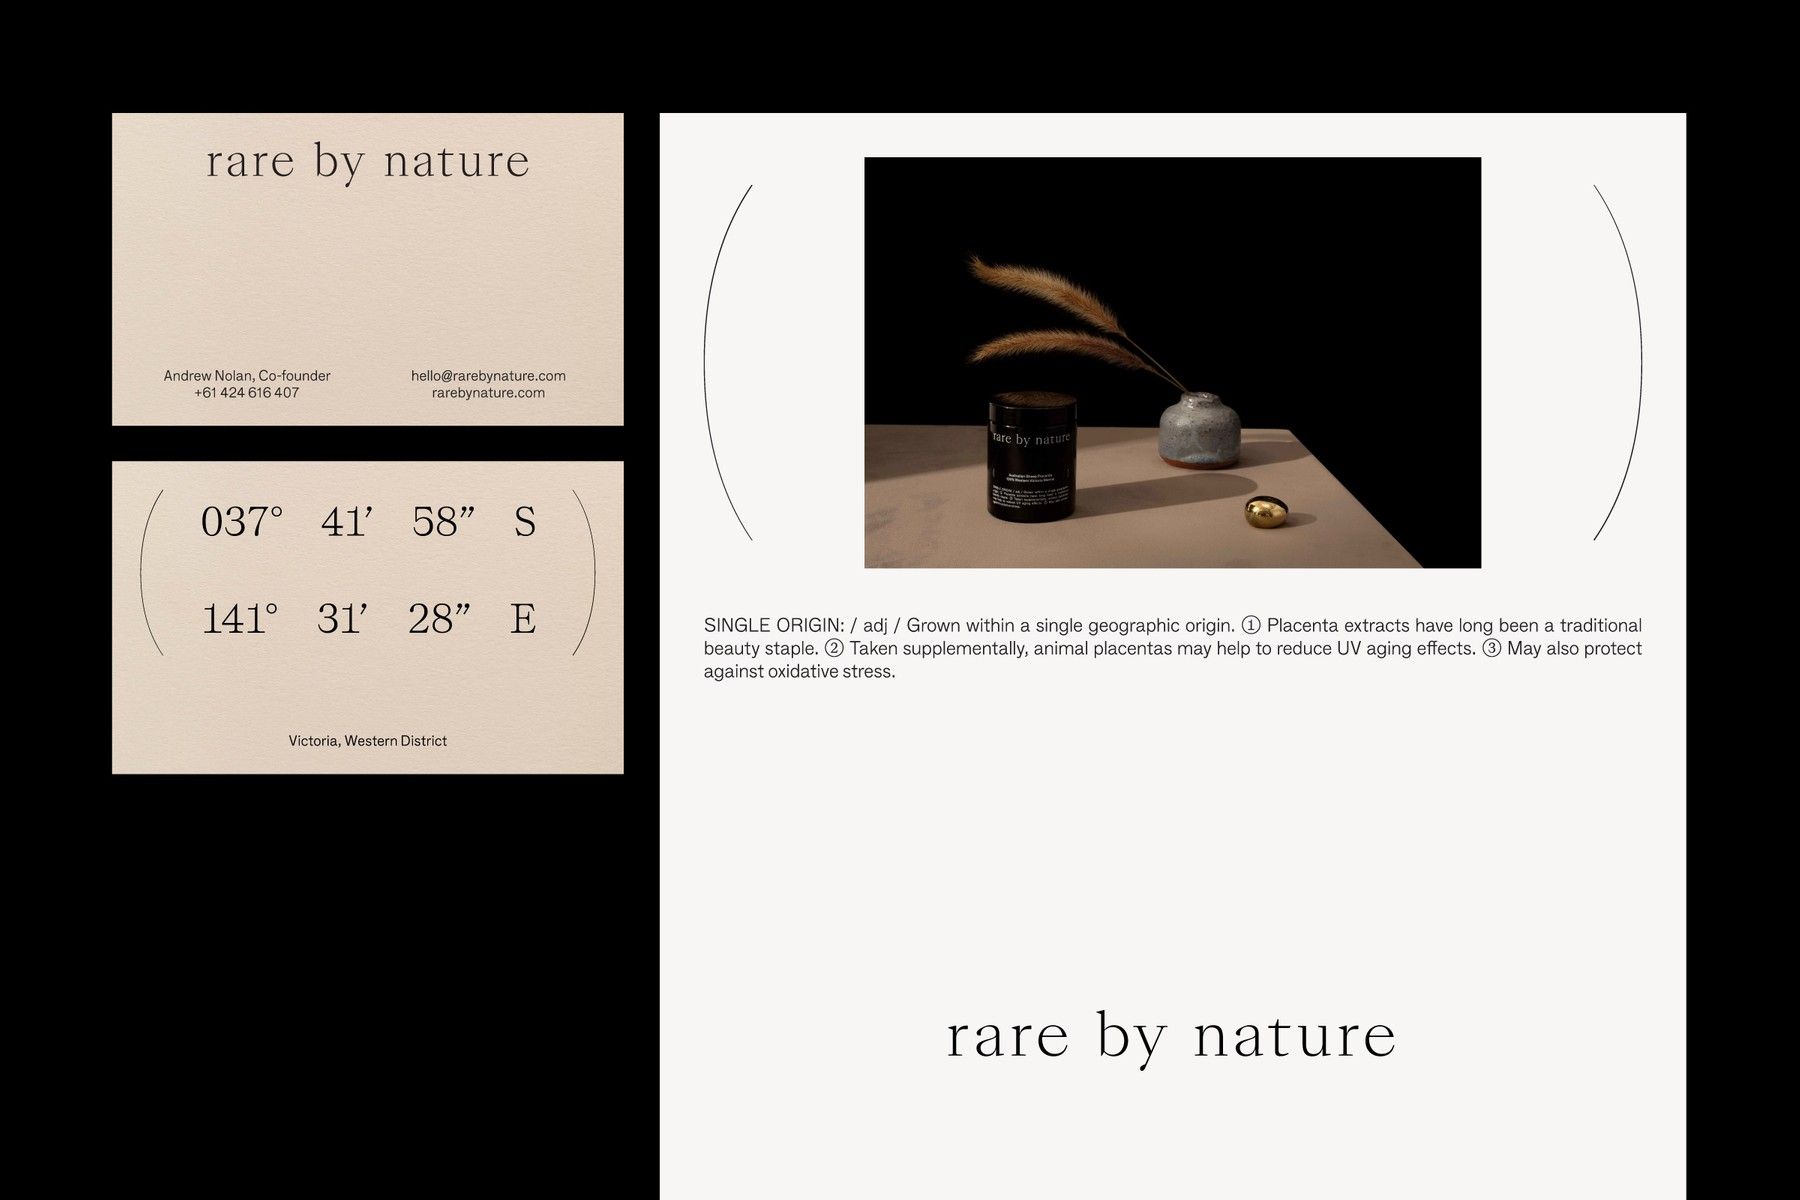 tcc_rare_by_nature_collateral.jpg